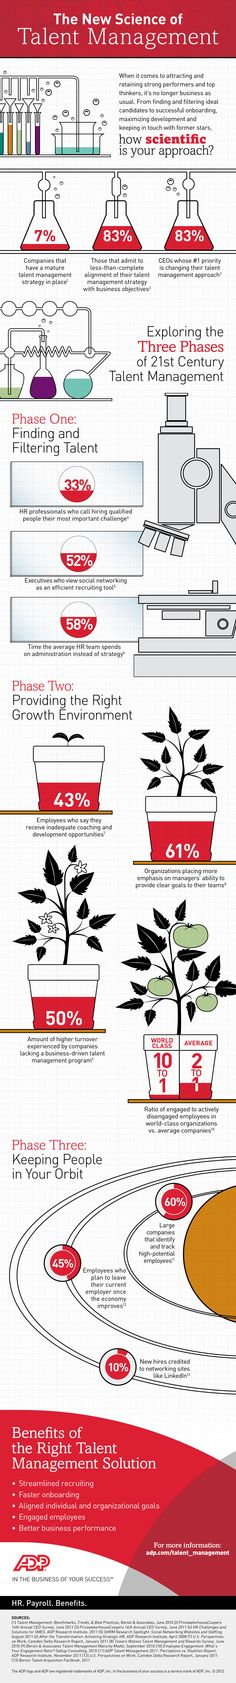 #INFOGRAPHIC - The New Science of #Talent Management from #ADP: How Scientific is your Approach?